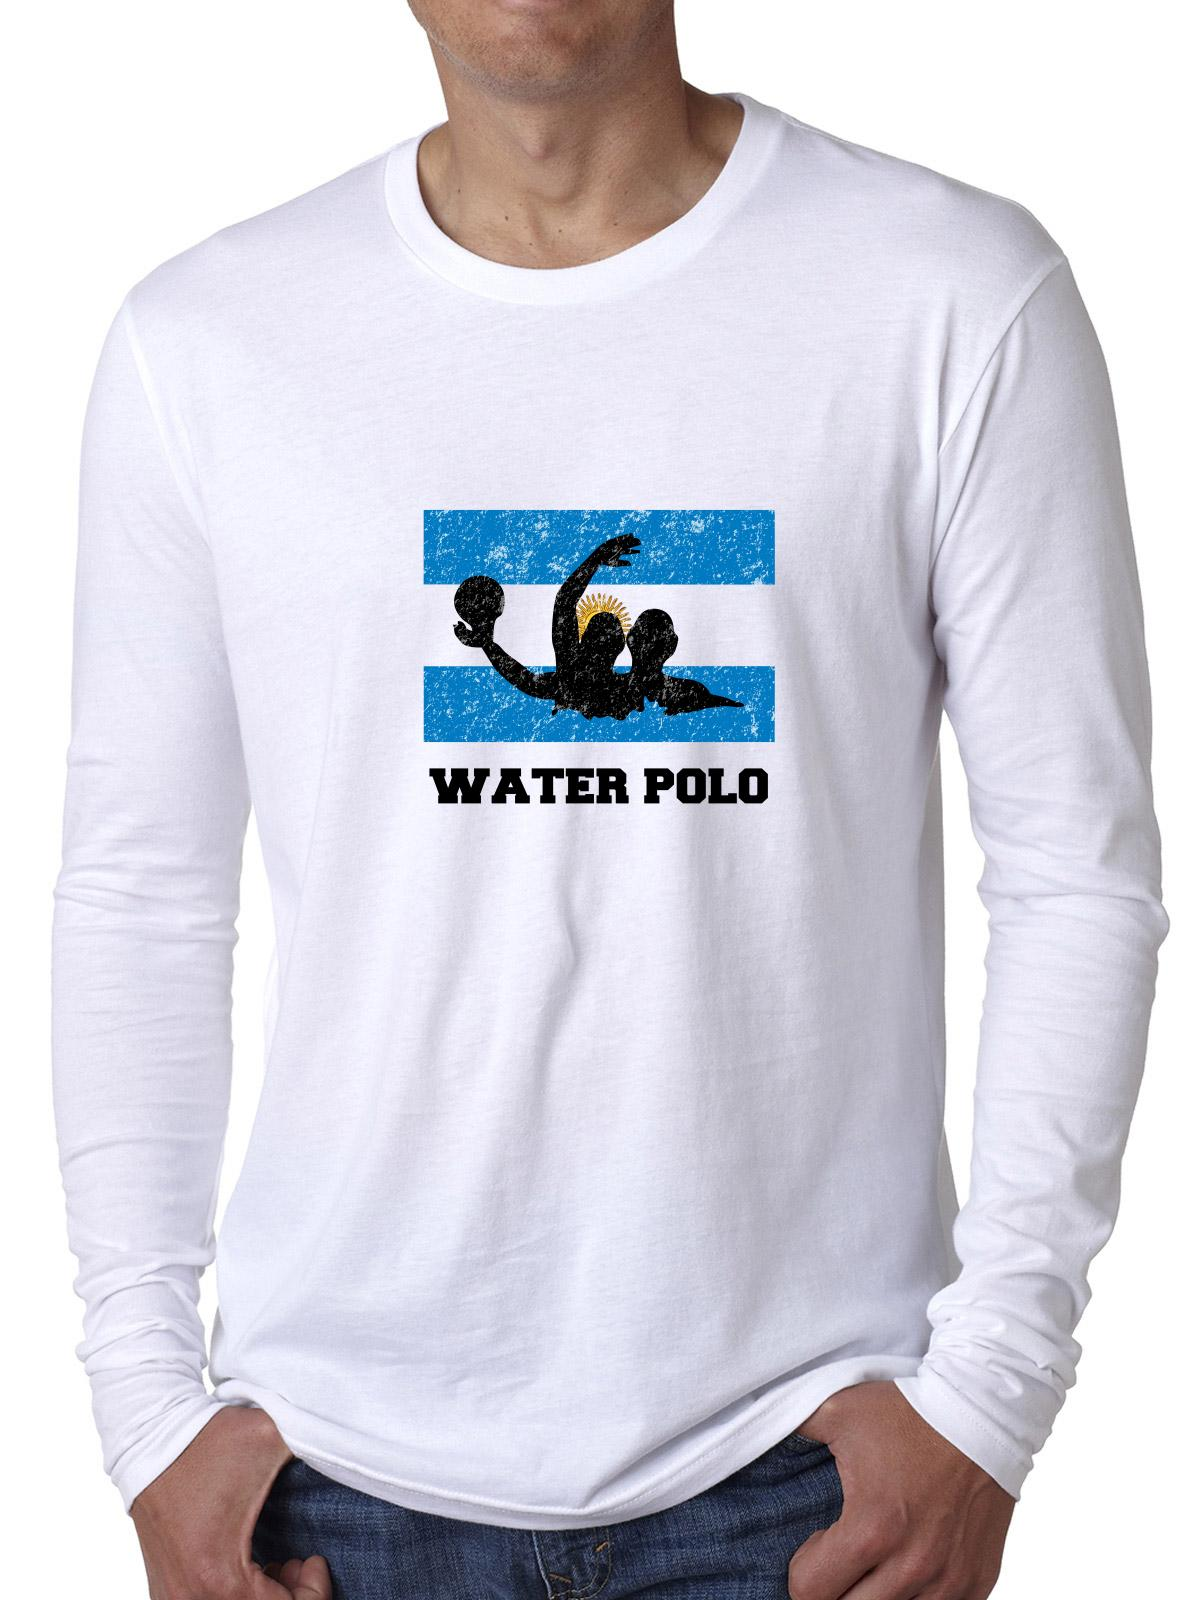 Argentina Olympic Water Polo Flag Silhouette Men's Long Sleeve T-Shirt by Hollywood Thread